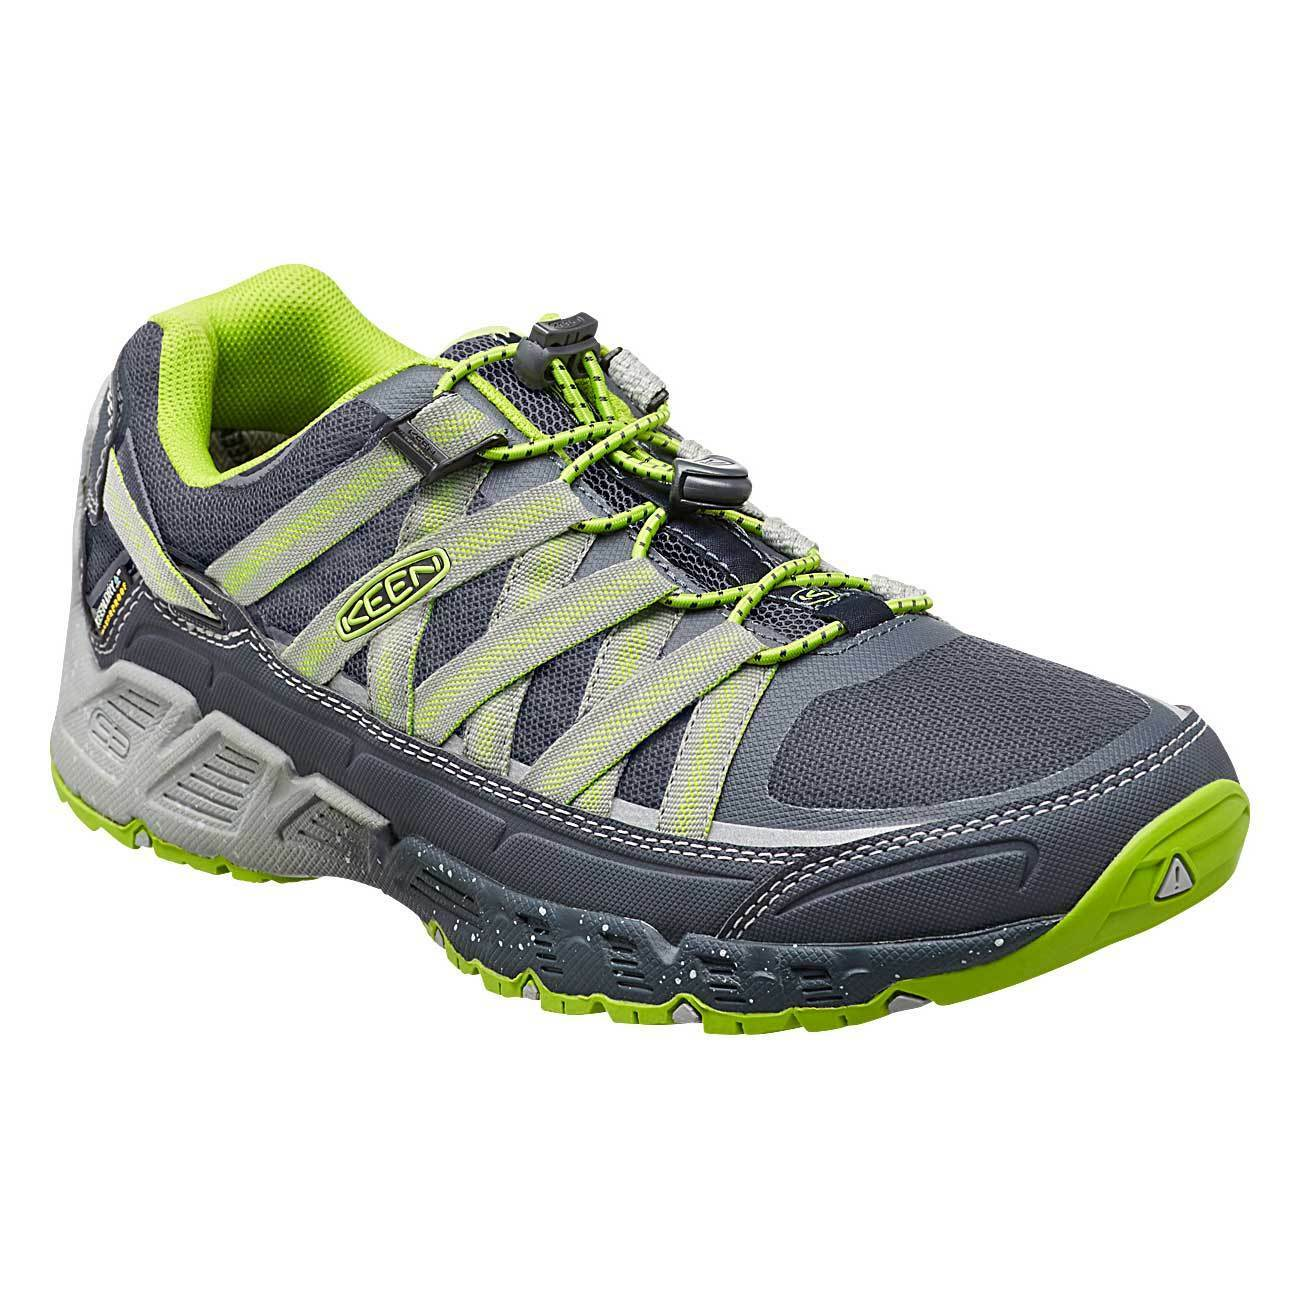 $140 KEEN VERSATRAIL WP MENS WATERPROOF HIKING TRAIL SHOE LOW BOOT GREEN GRAY